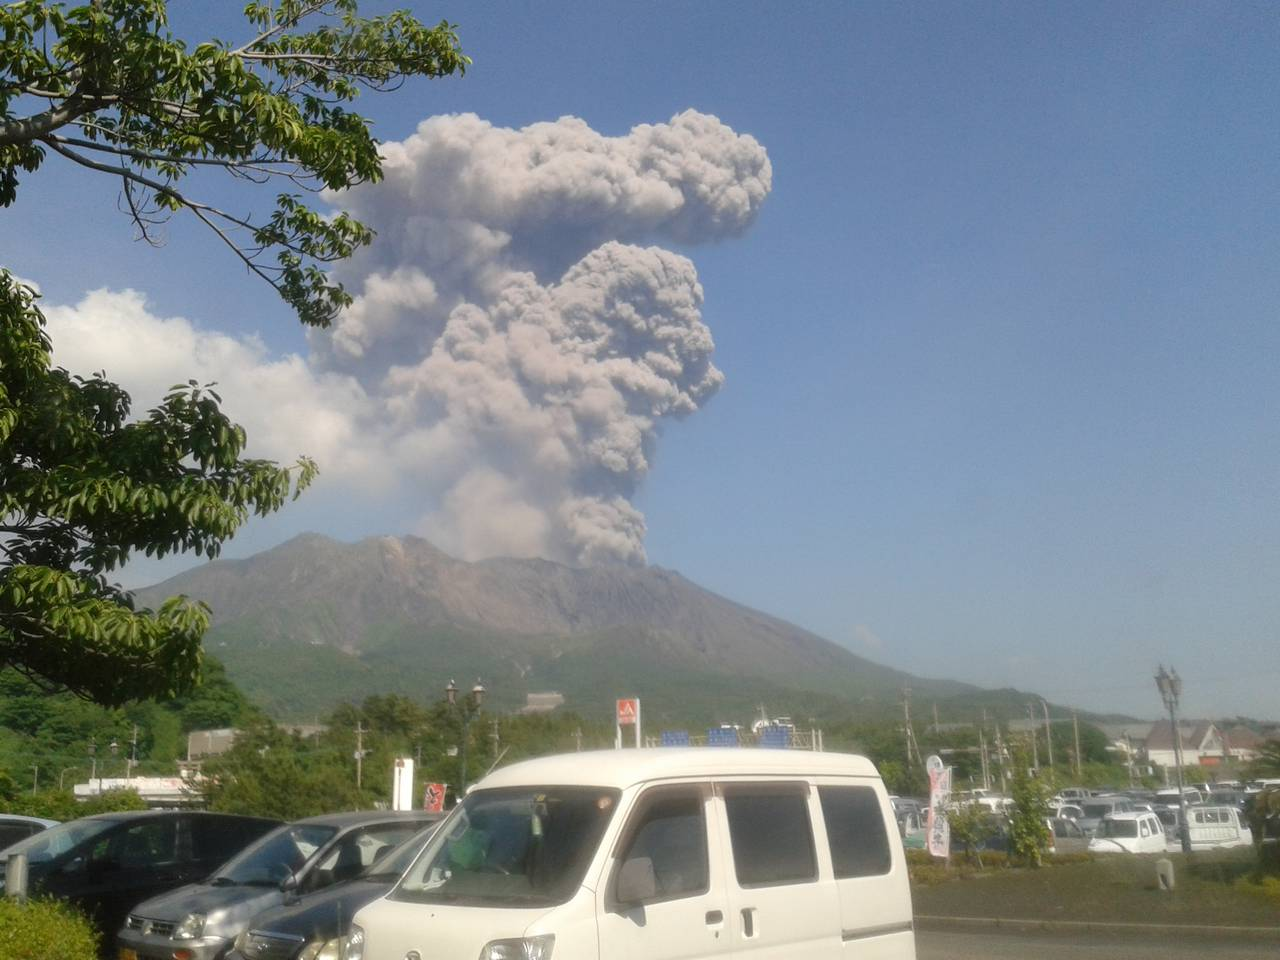 Strong eruption from Sakurajima at 17:32 local time on 17 May, welcoming us on arrival